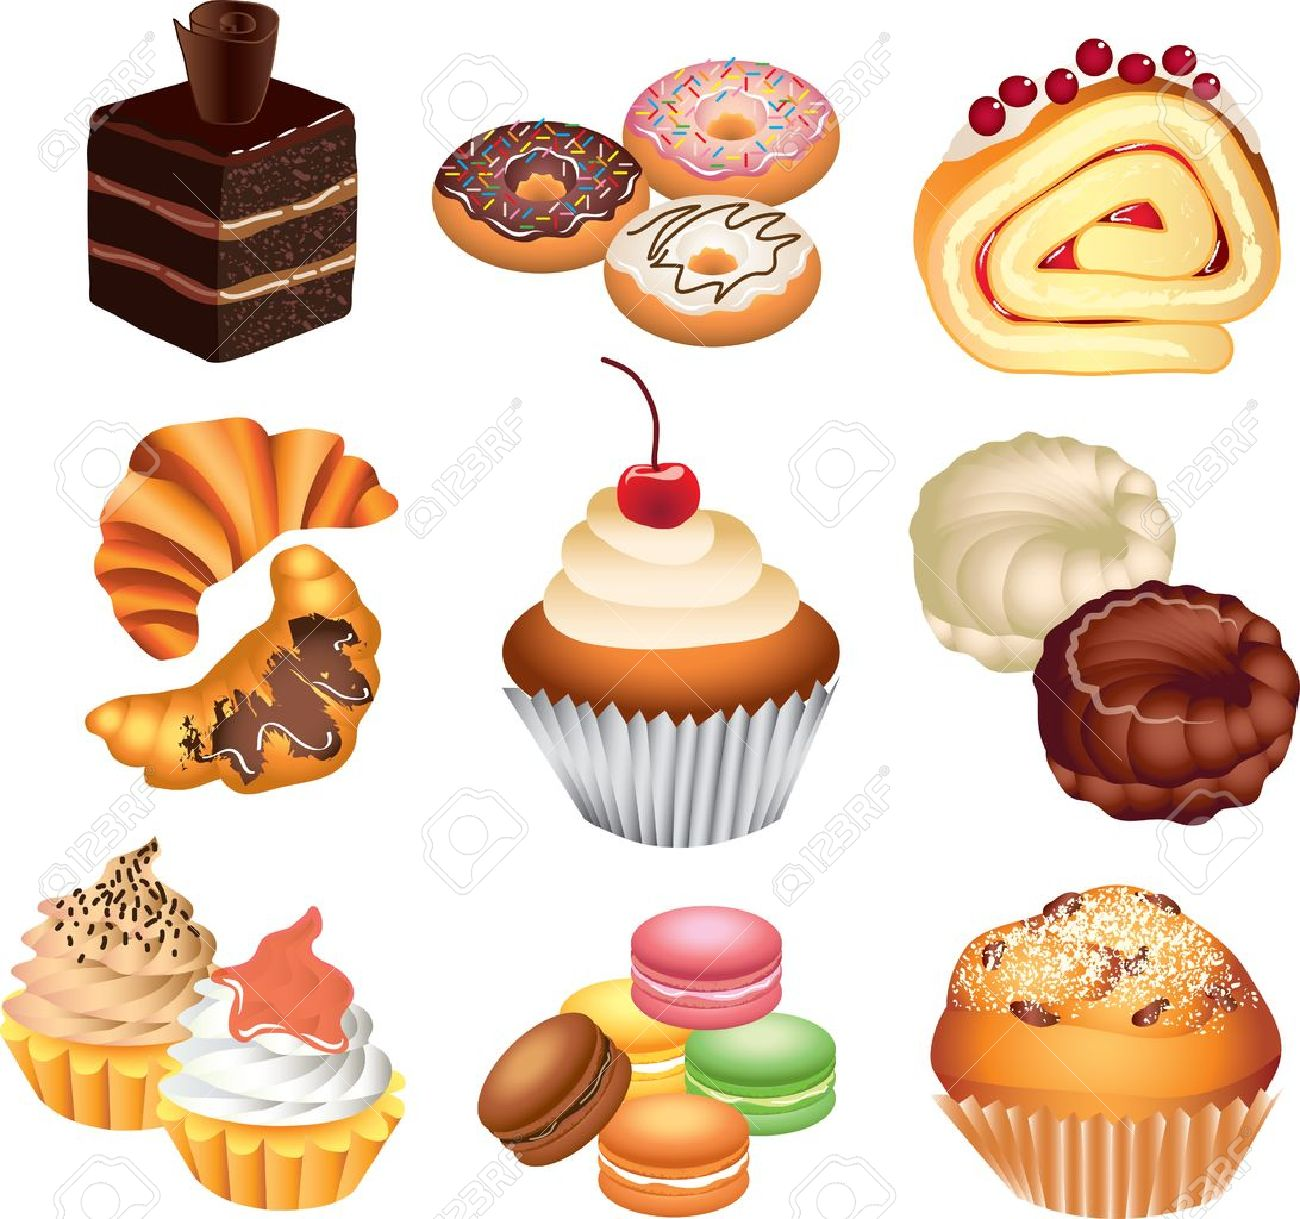 Pastries clipart 12 » Clipart Station.